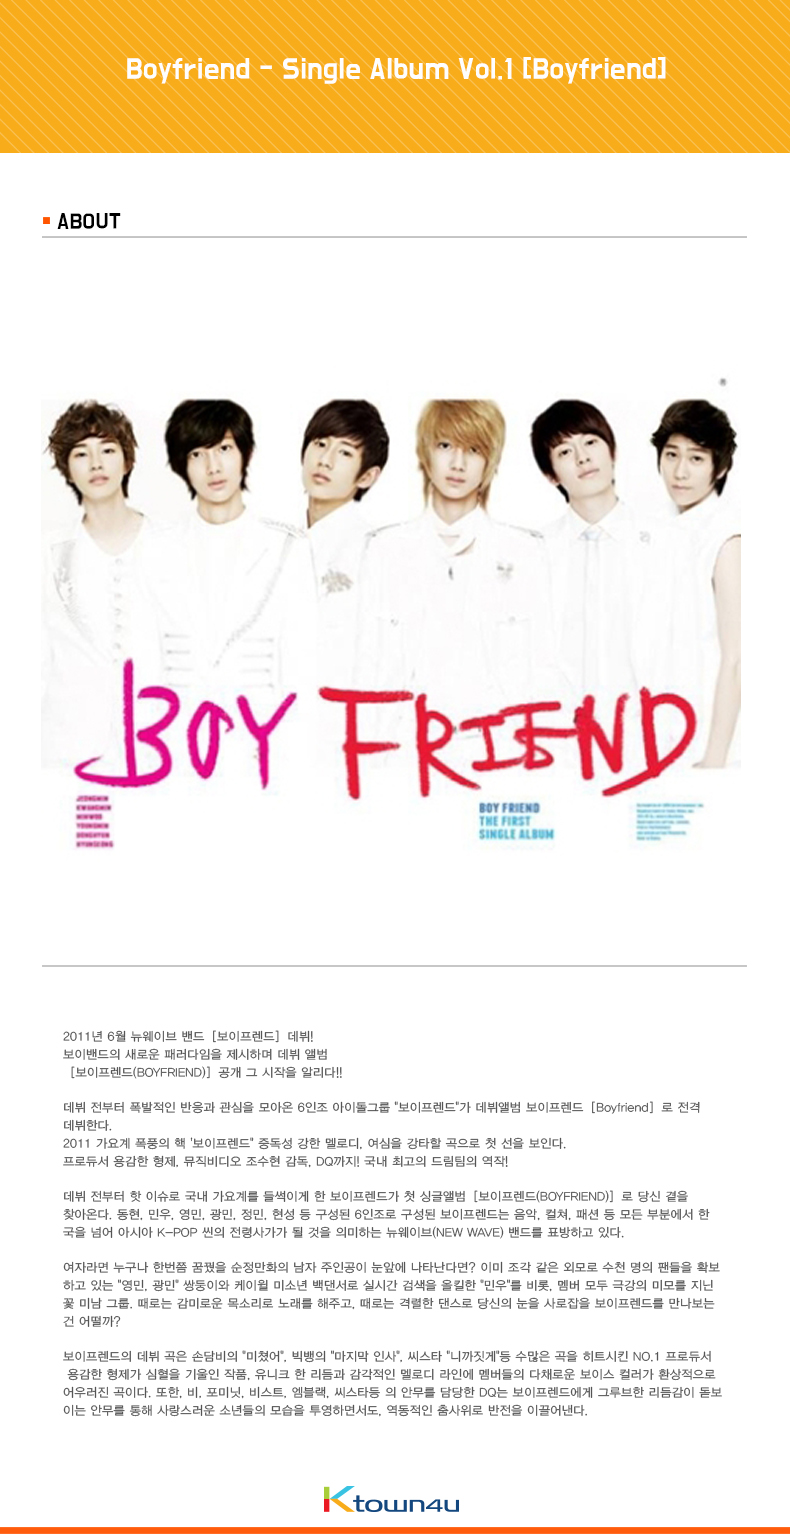 Boyfriend - Single Album Vol.1 [Boyfriend]